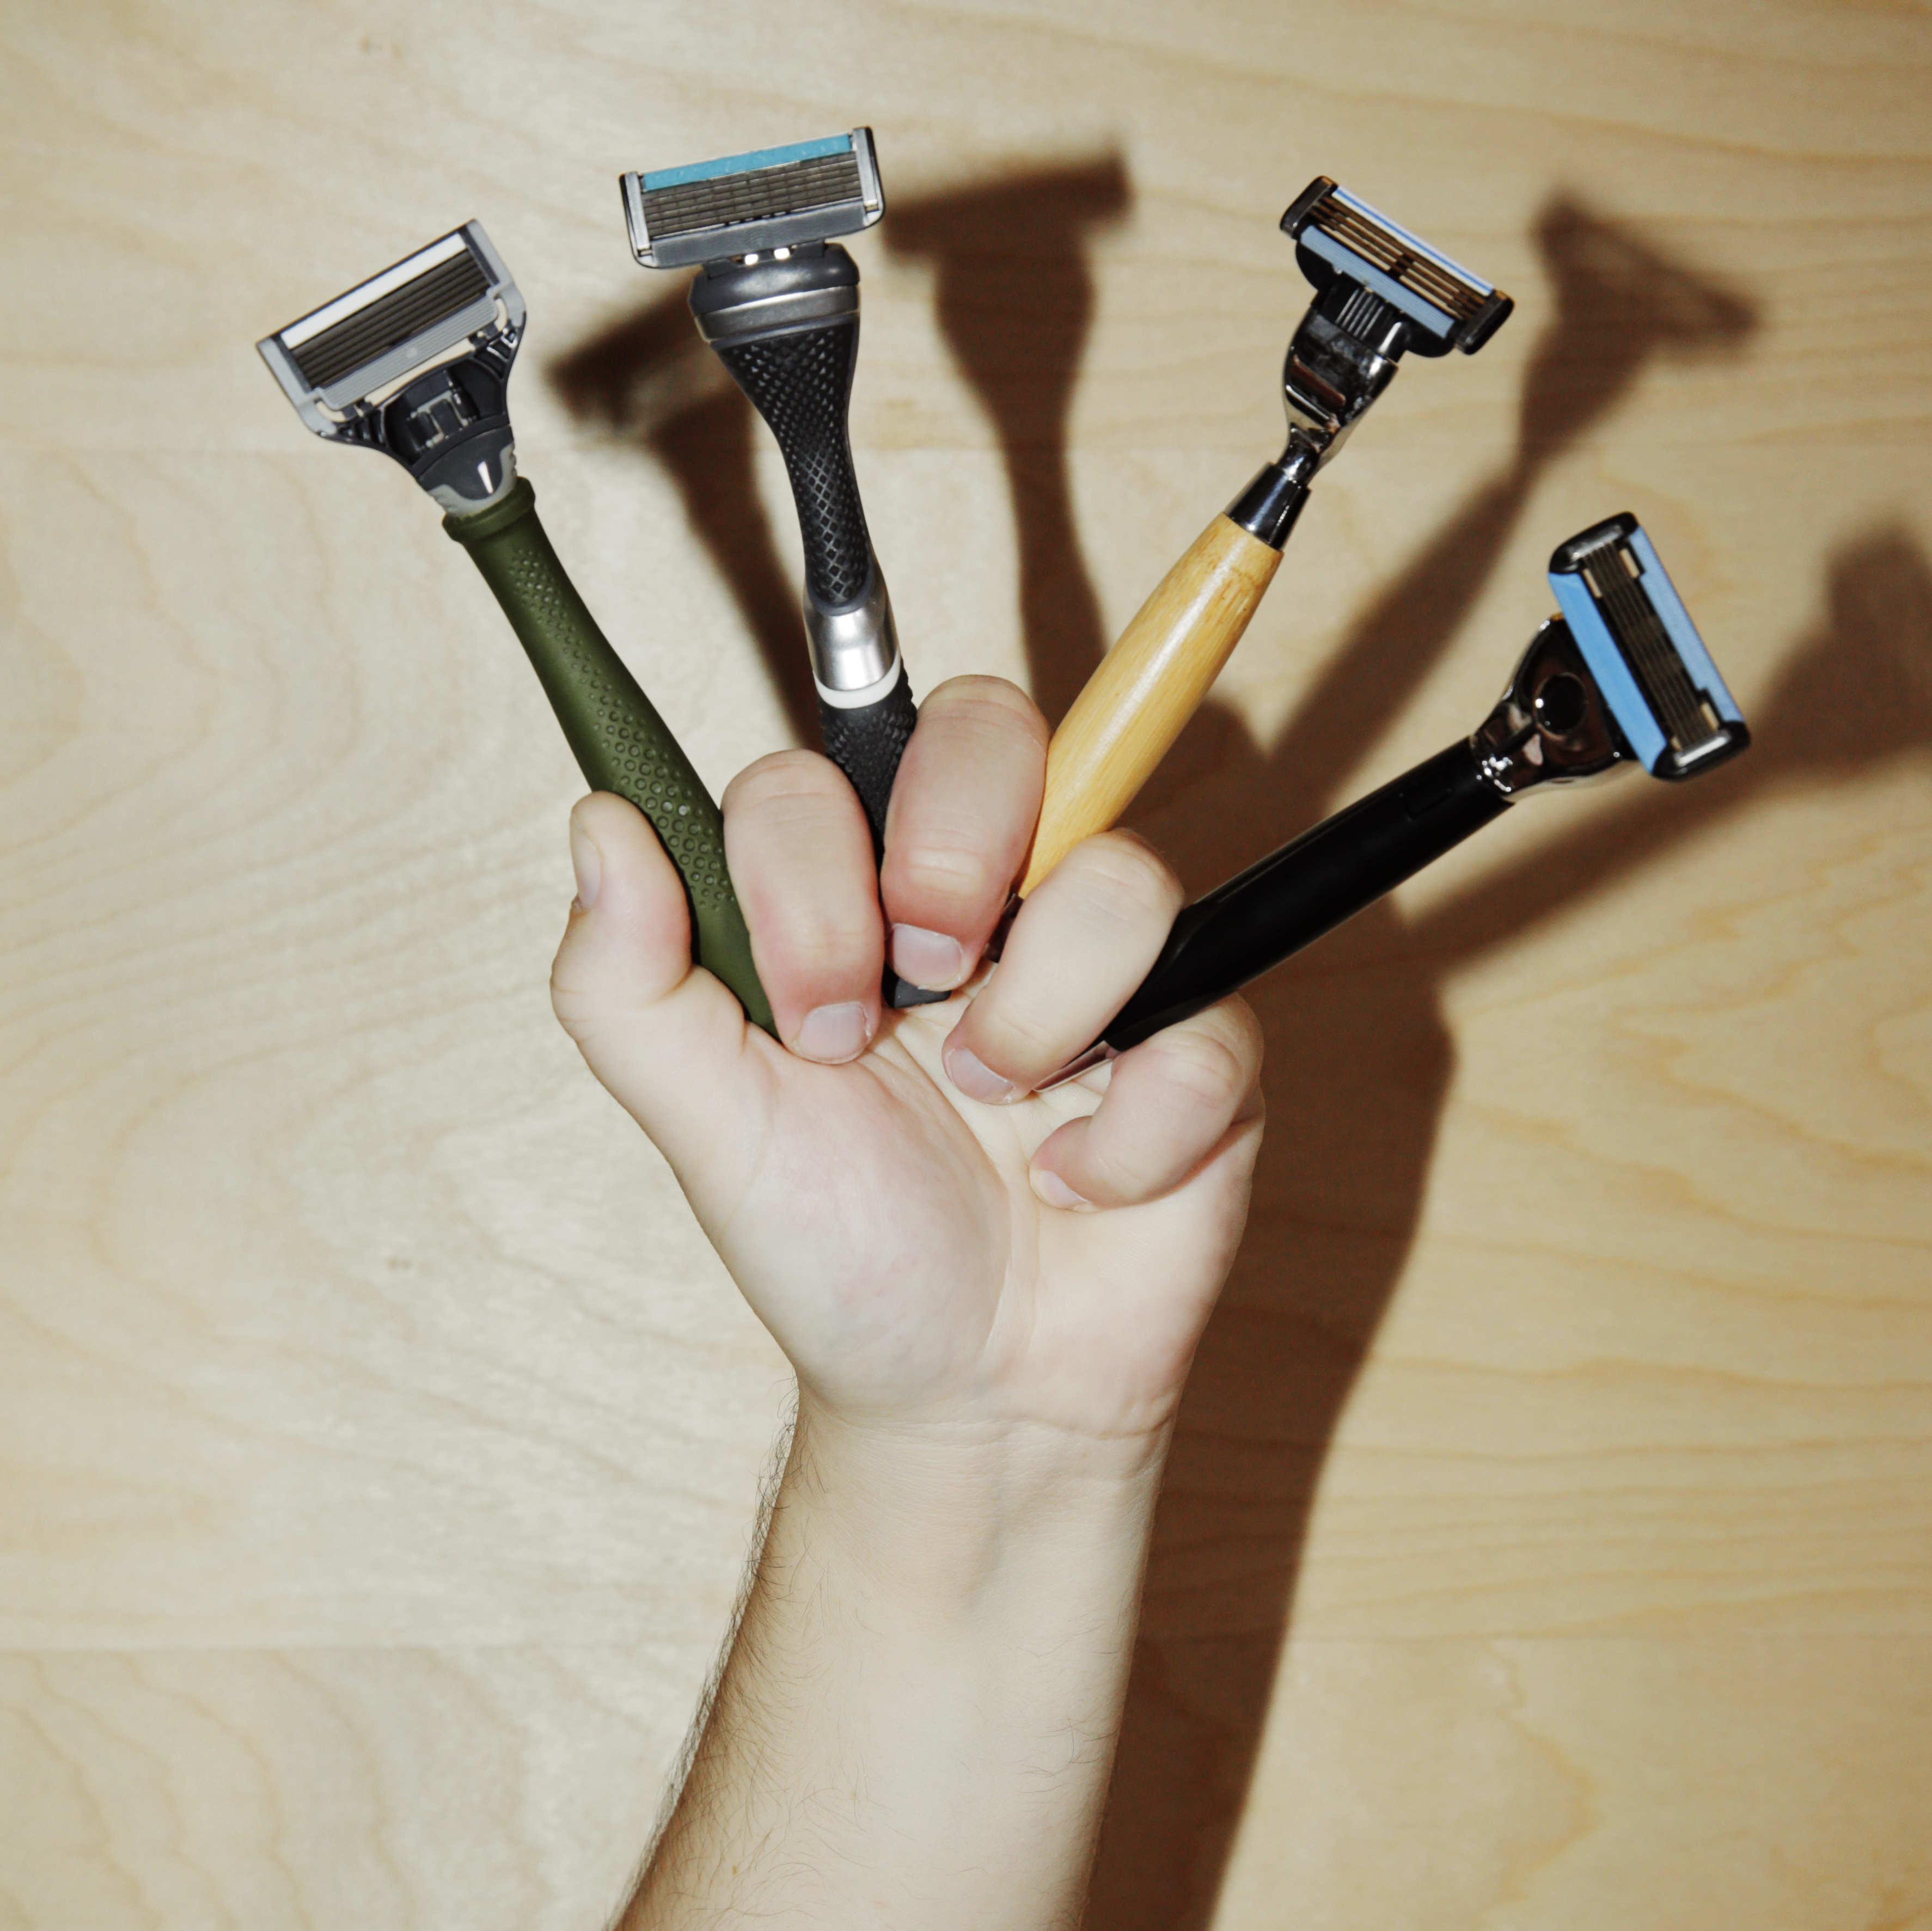 various razors on a hand